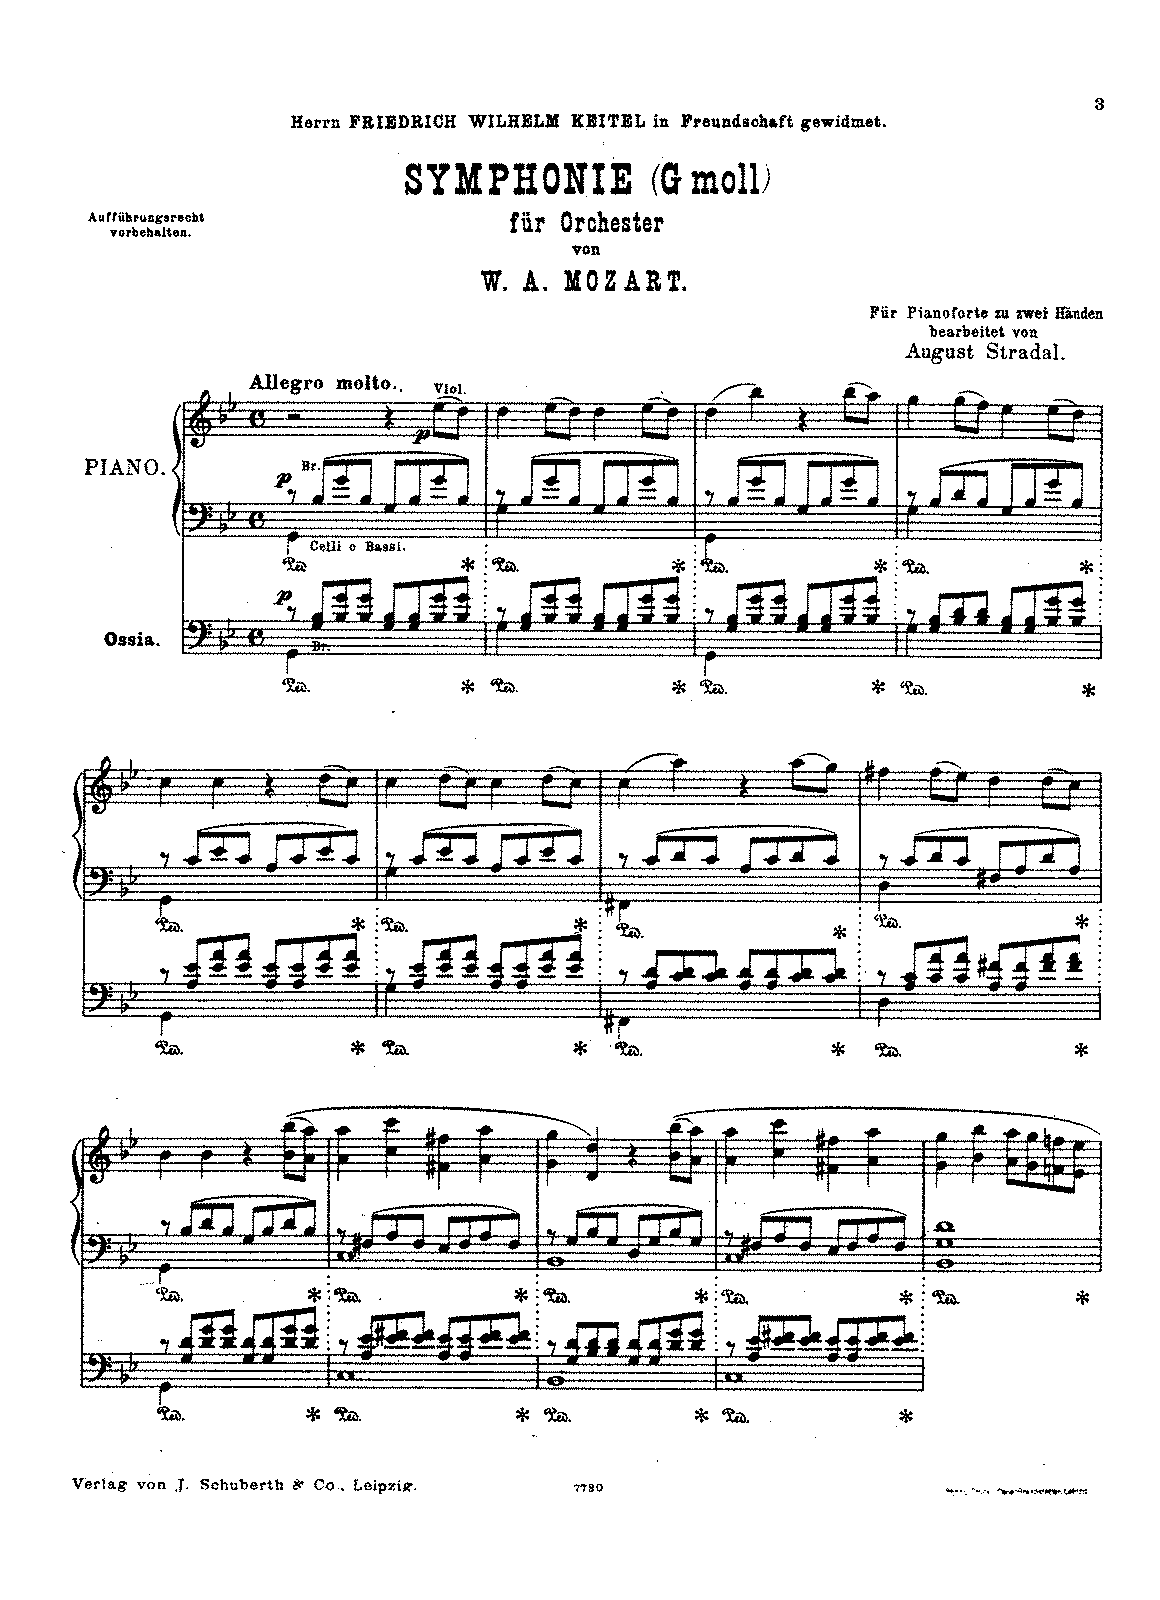 PMLP01572-Mozart-Stradal Symphony -40 in g (solo piano).pdf